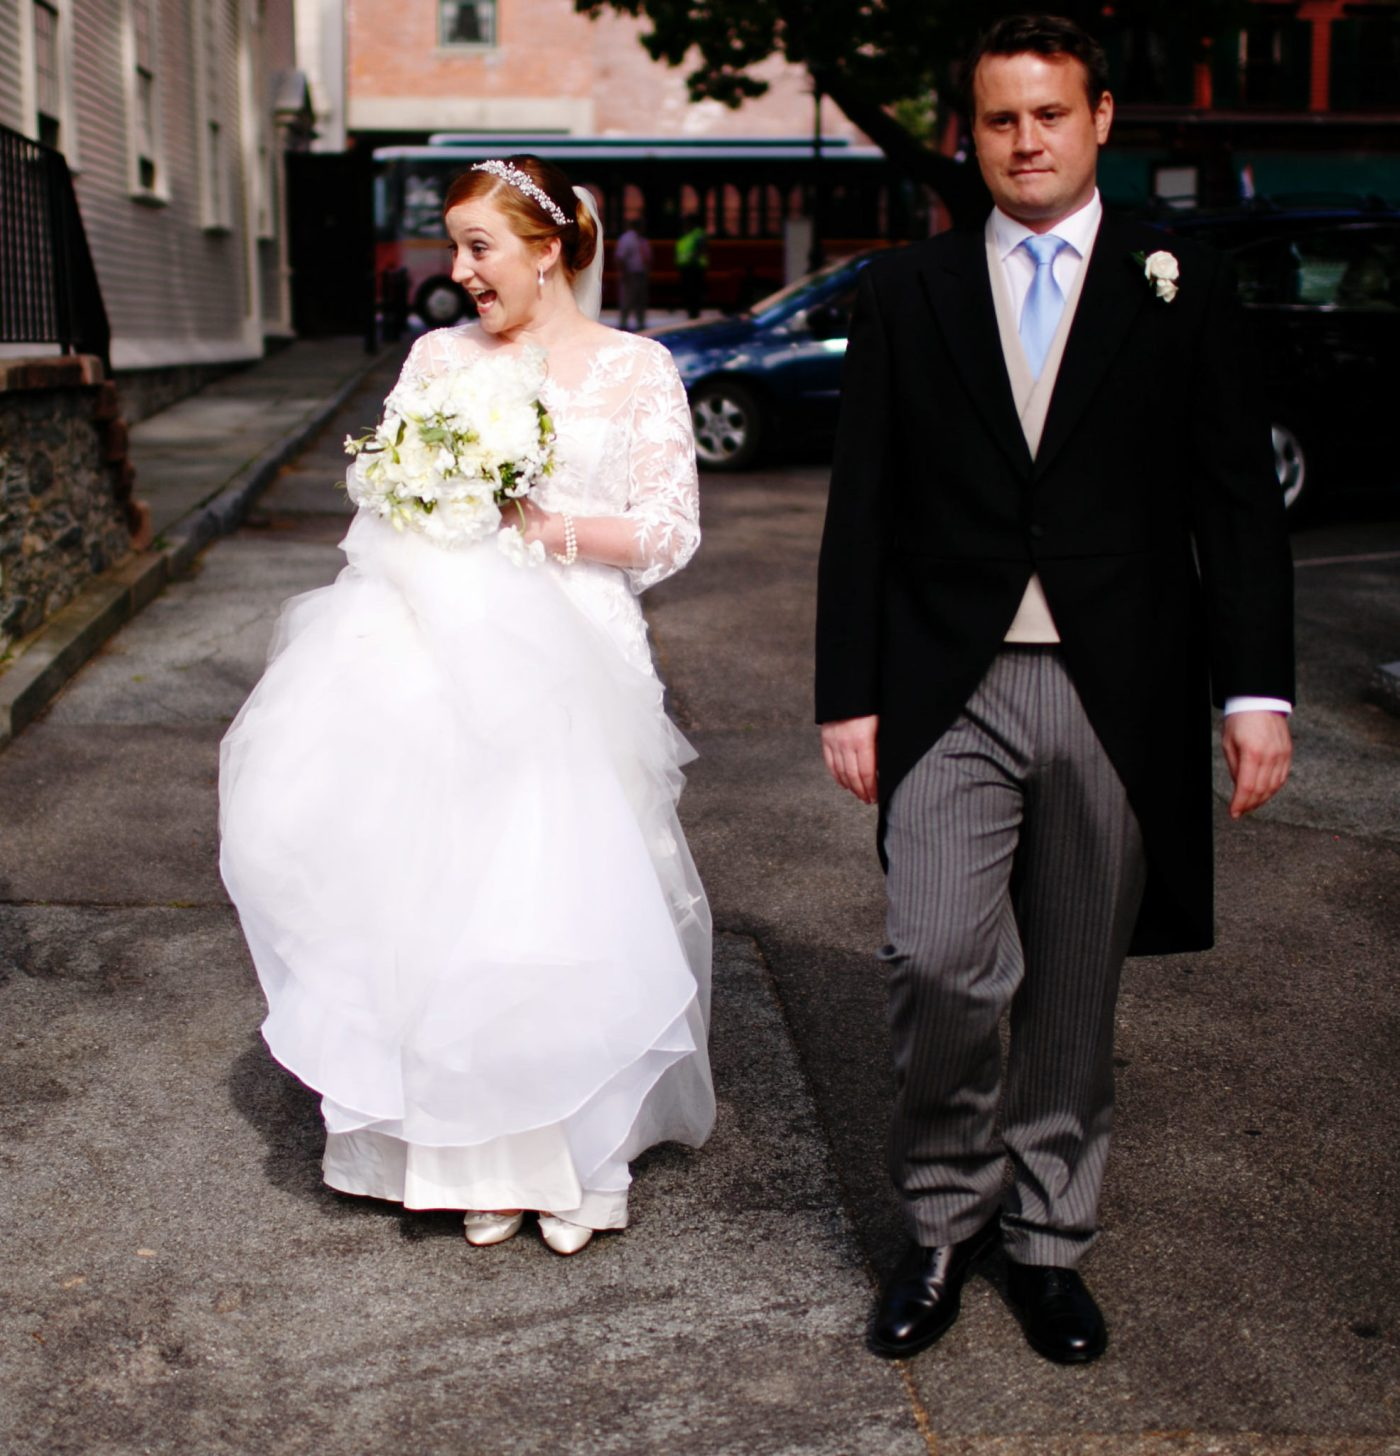 A Summer Wedding at Trinity Church, Newport RI. And all permeated with a British flair!